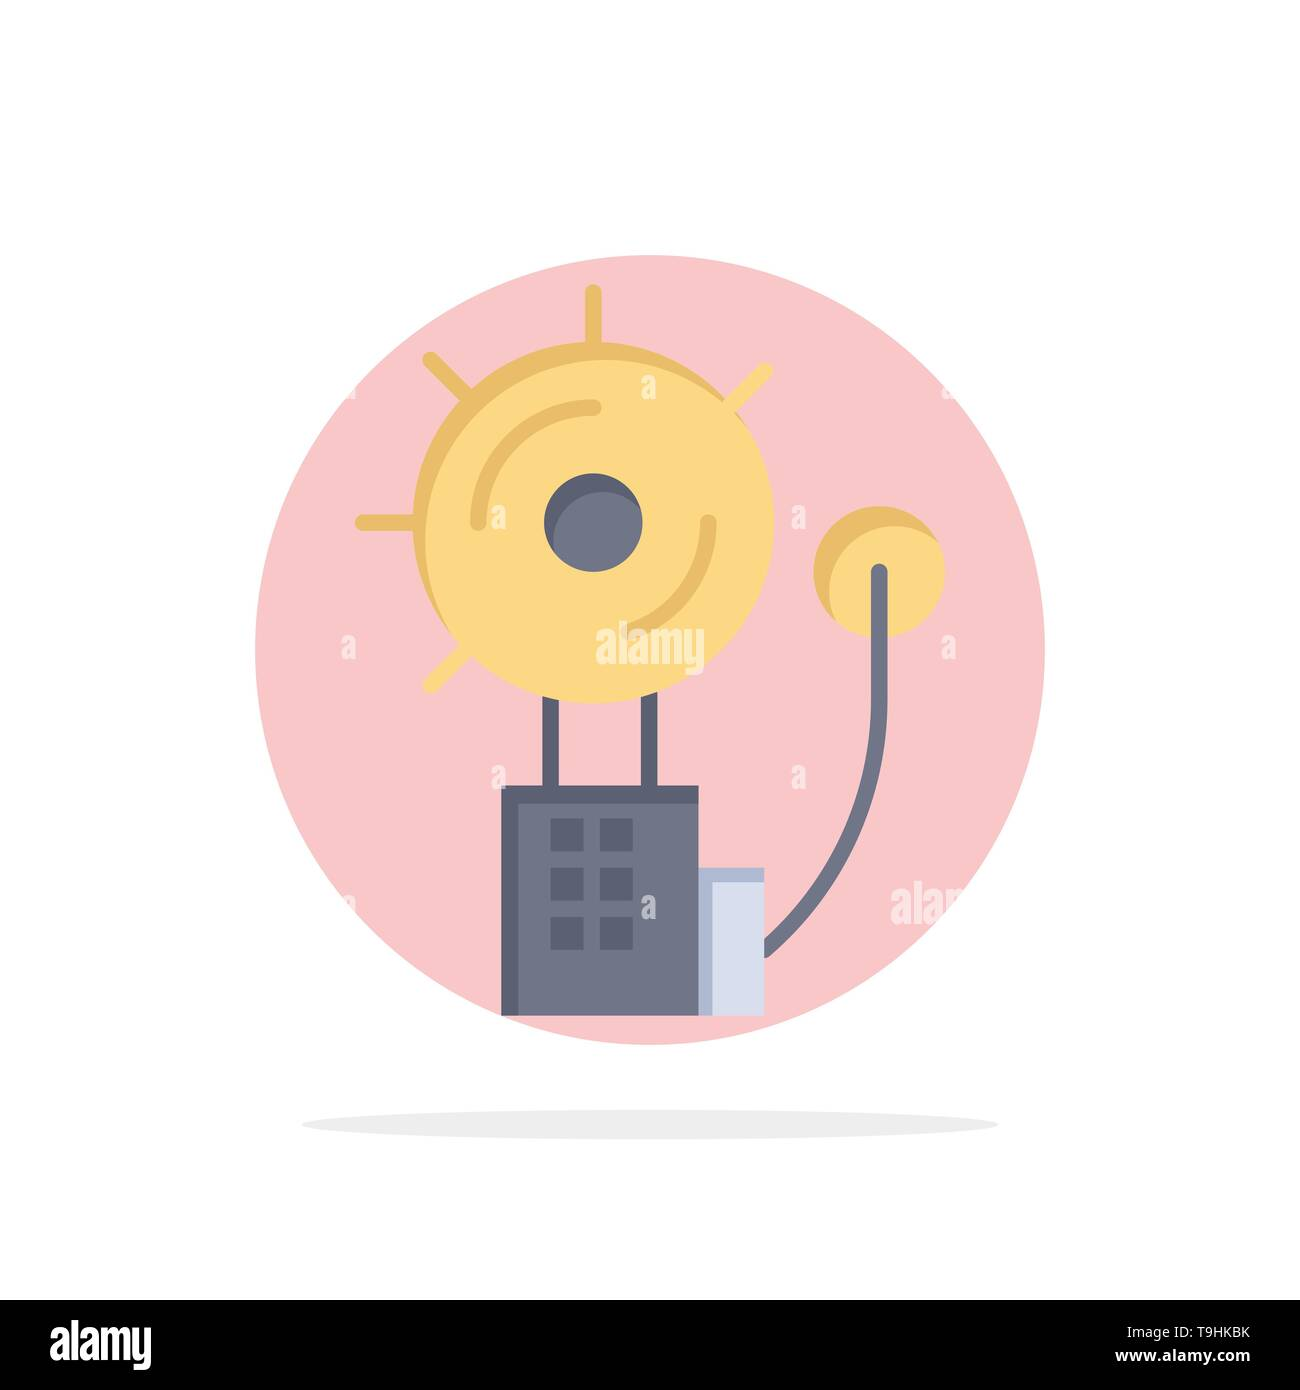 Alarm, Alert, Bell, Fire, Intruder Abstract Circle Background Flat color Icon - Stock Image